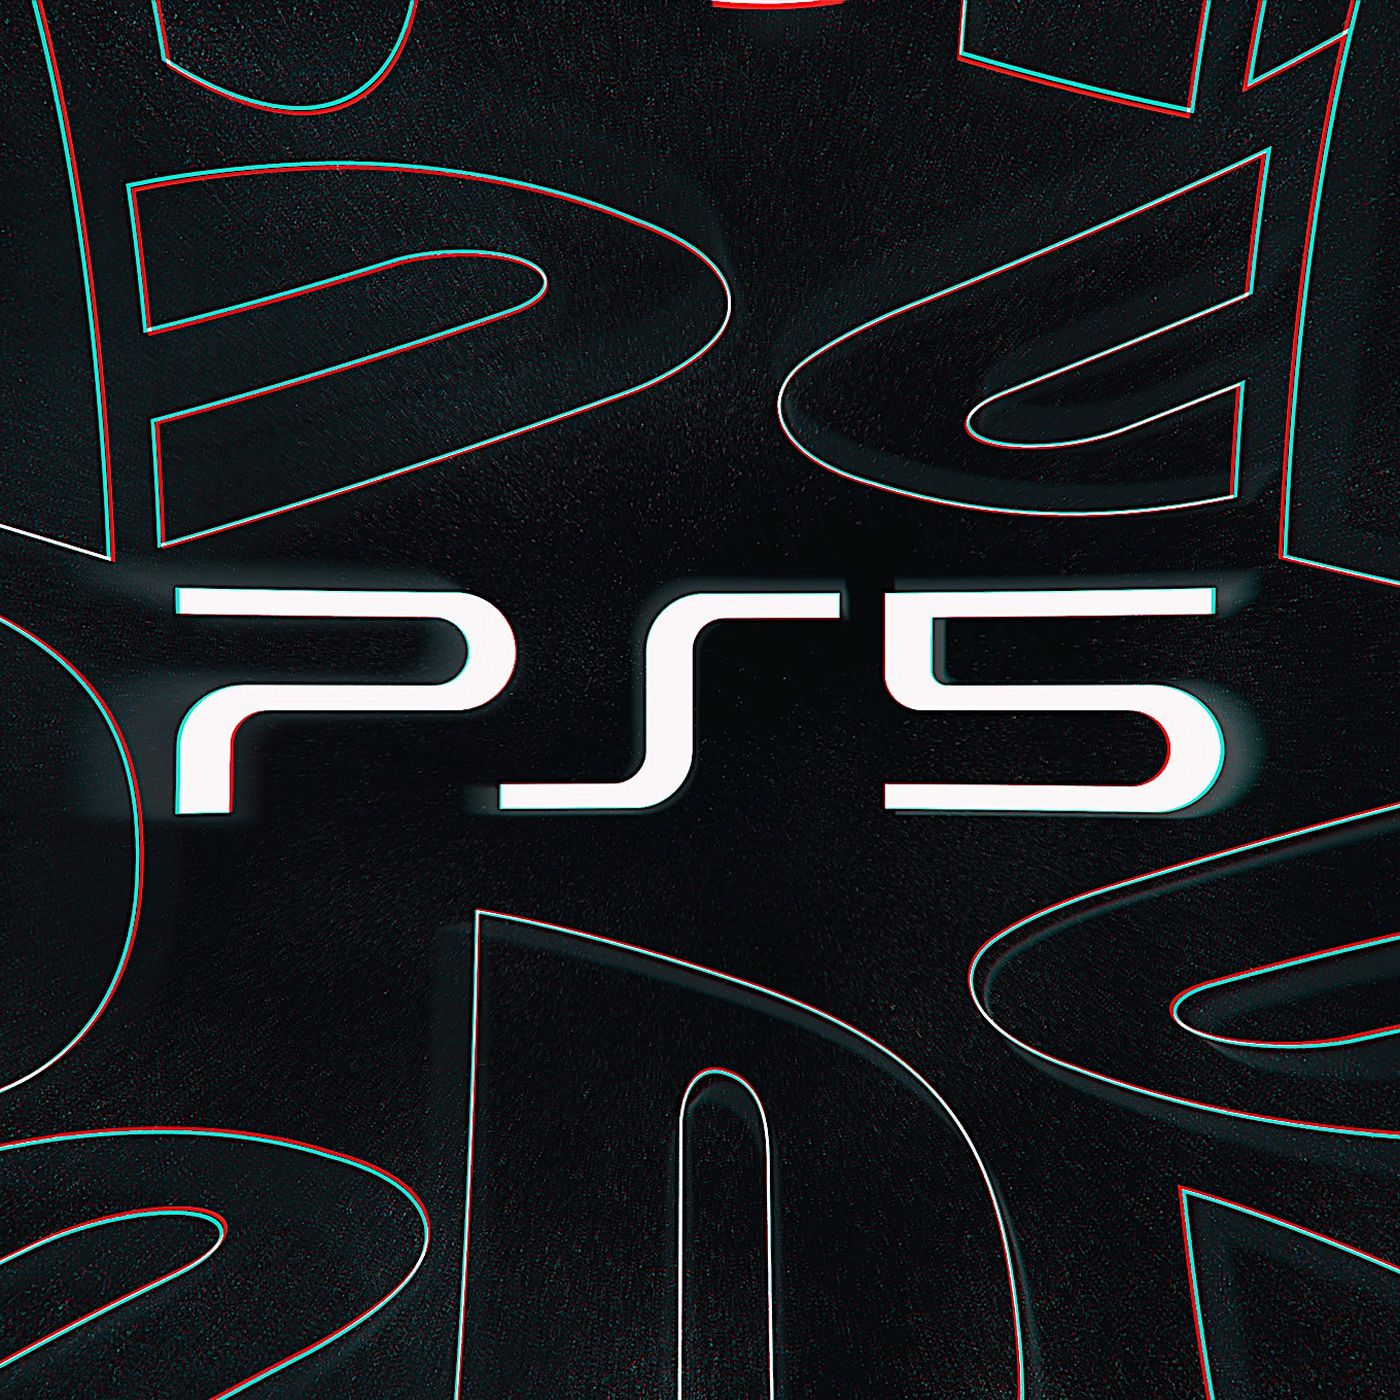 Sony Confirms Ps5 Will Have Exclusive Games Playable Only On Next Gen Hardware The Verge